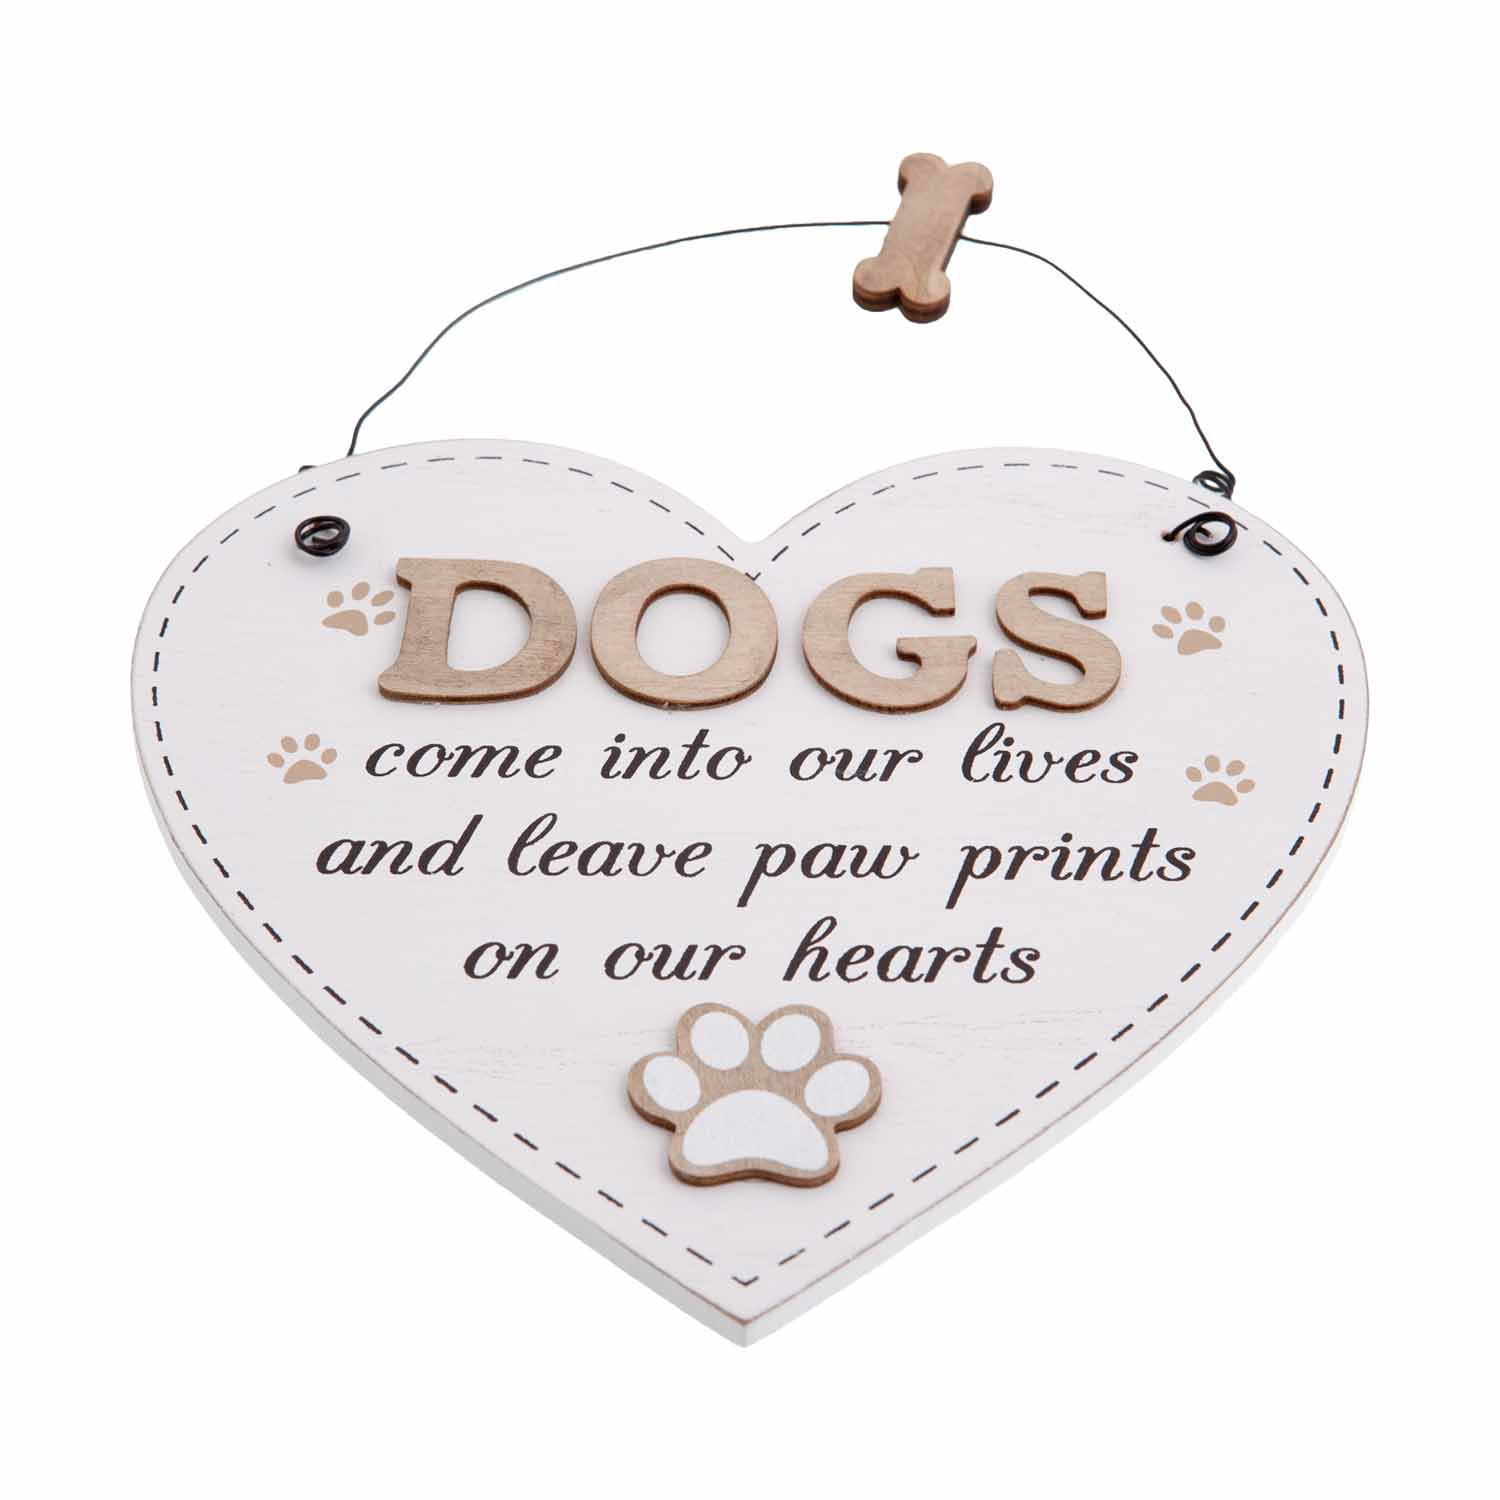 Dog Krazy Gifts - Dogs Come Into Our Lives Large Heart Sign, Part Of The Wide Range of Dog Signs available from DogKrazyGifts.co.uk